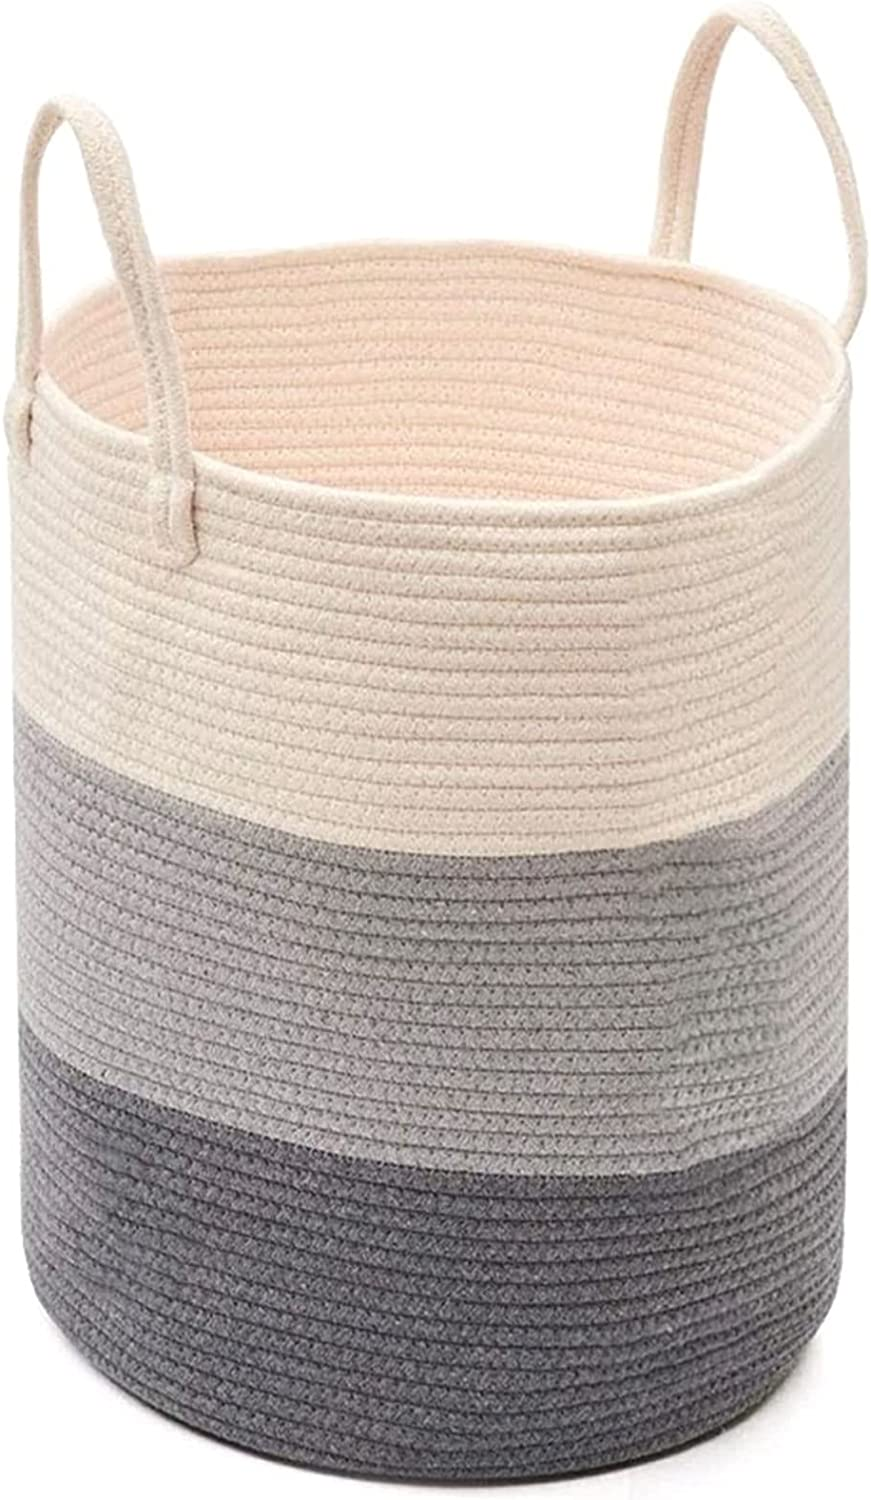 DSWHM Storage Basket Soft Ba New Orleans Mall Laundry Large discharge sale Woven Cotton